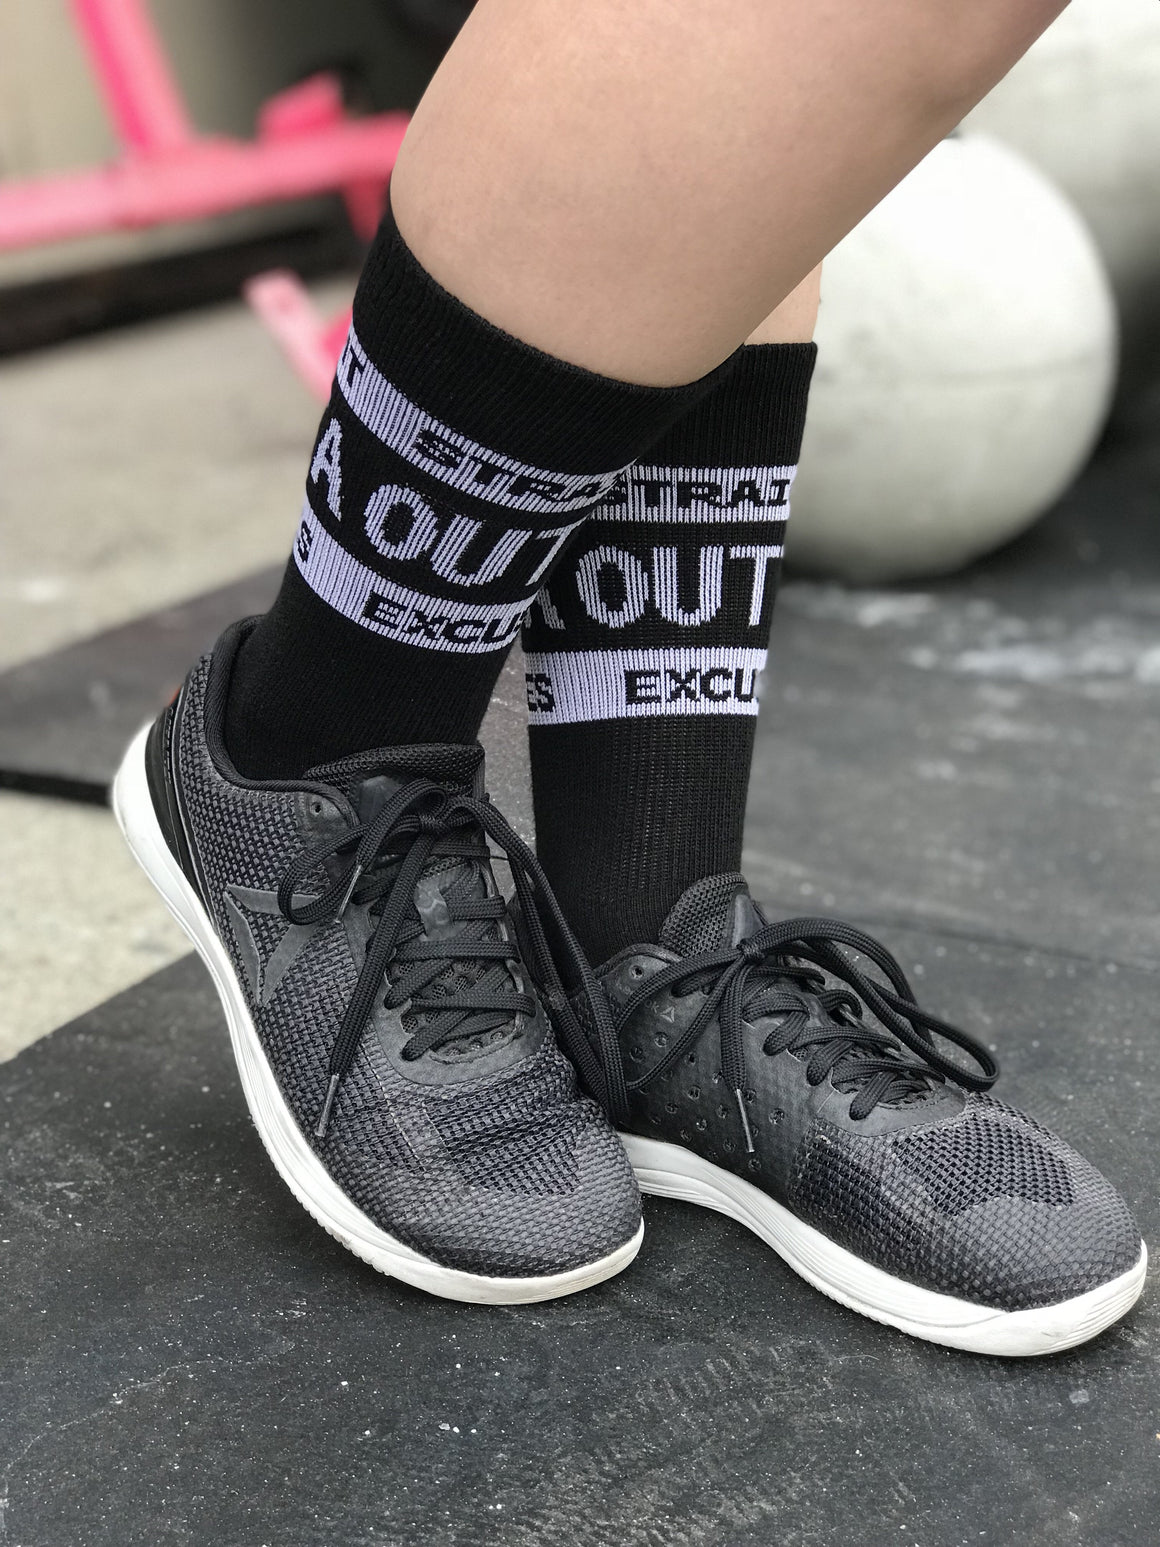 Straight Outta Excuses Black Fun Athletic Crew Socks - The Sox Box